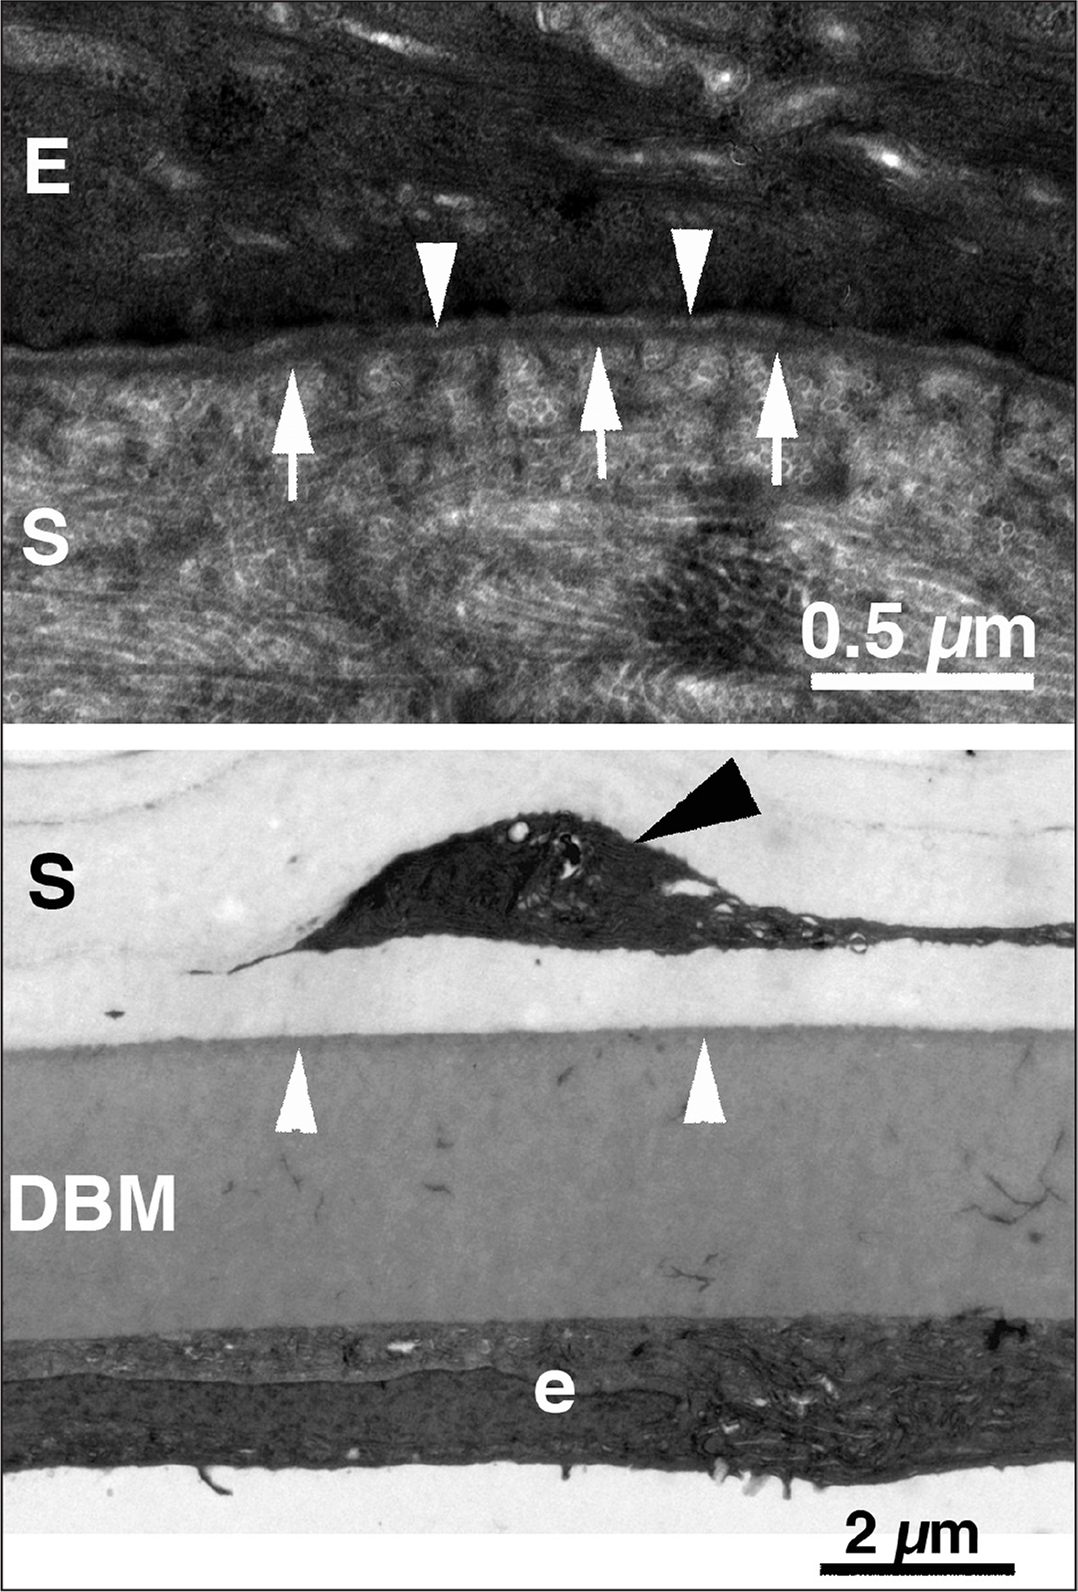 Ultrastructure of the epithelial basement membrane (EBM) and Descemet's basement membrane (DBM). (A) The rabbit corneal EBM at original magnification ×32,000 shows the lamina lucida (arrowheads) and lamina densa (arrows). E is the epithelium and S is the stroma. (B) The rabbit corneal DBM at original magnification ×9,000 in a 12-week-old rabbit is much thicker than the EBM. The anterior banded layer is indicated by the white arrowheads. The remainder of DBM is the posterior non-banded layer. e is the endothelium and S is the stroma. The black arrowhead is a keratocyte.